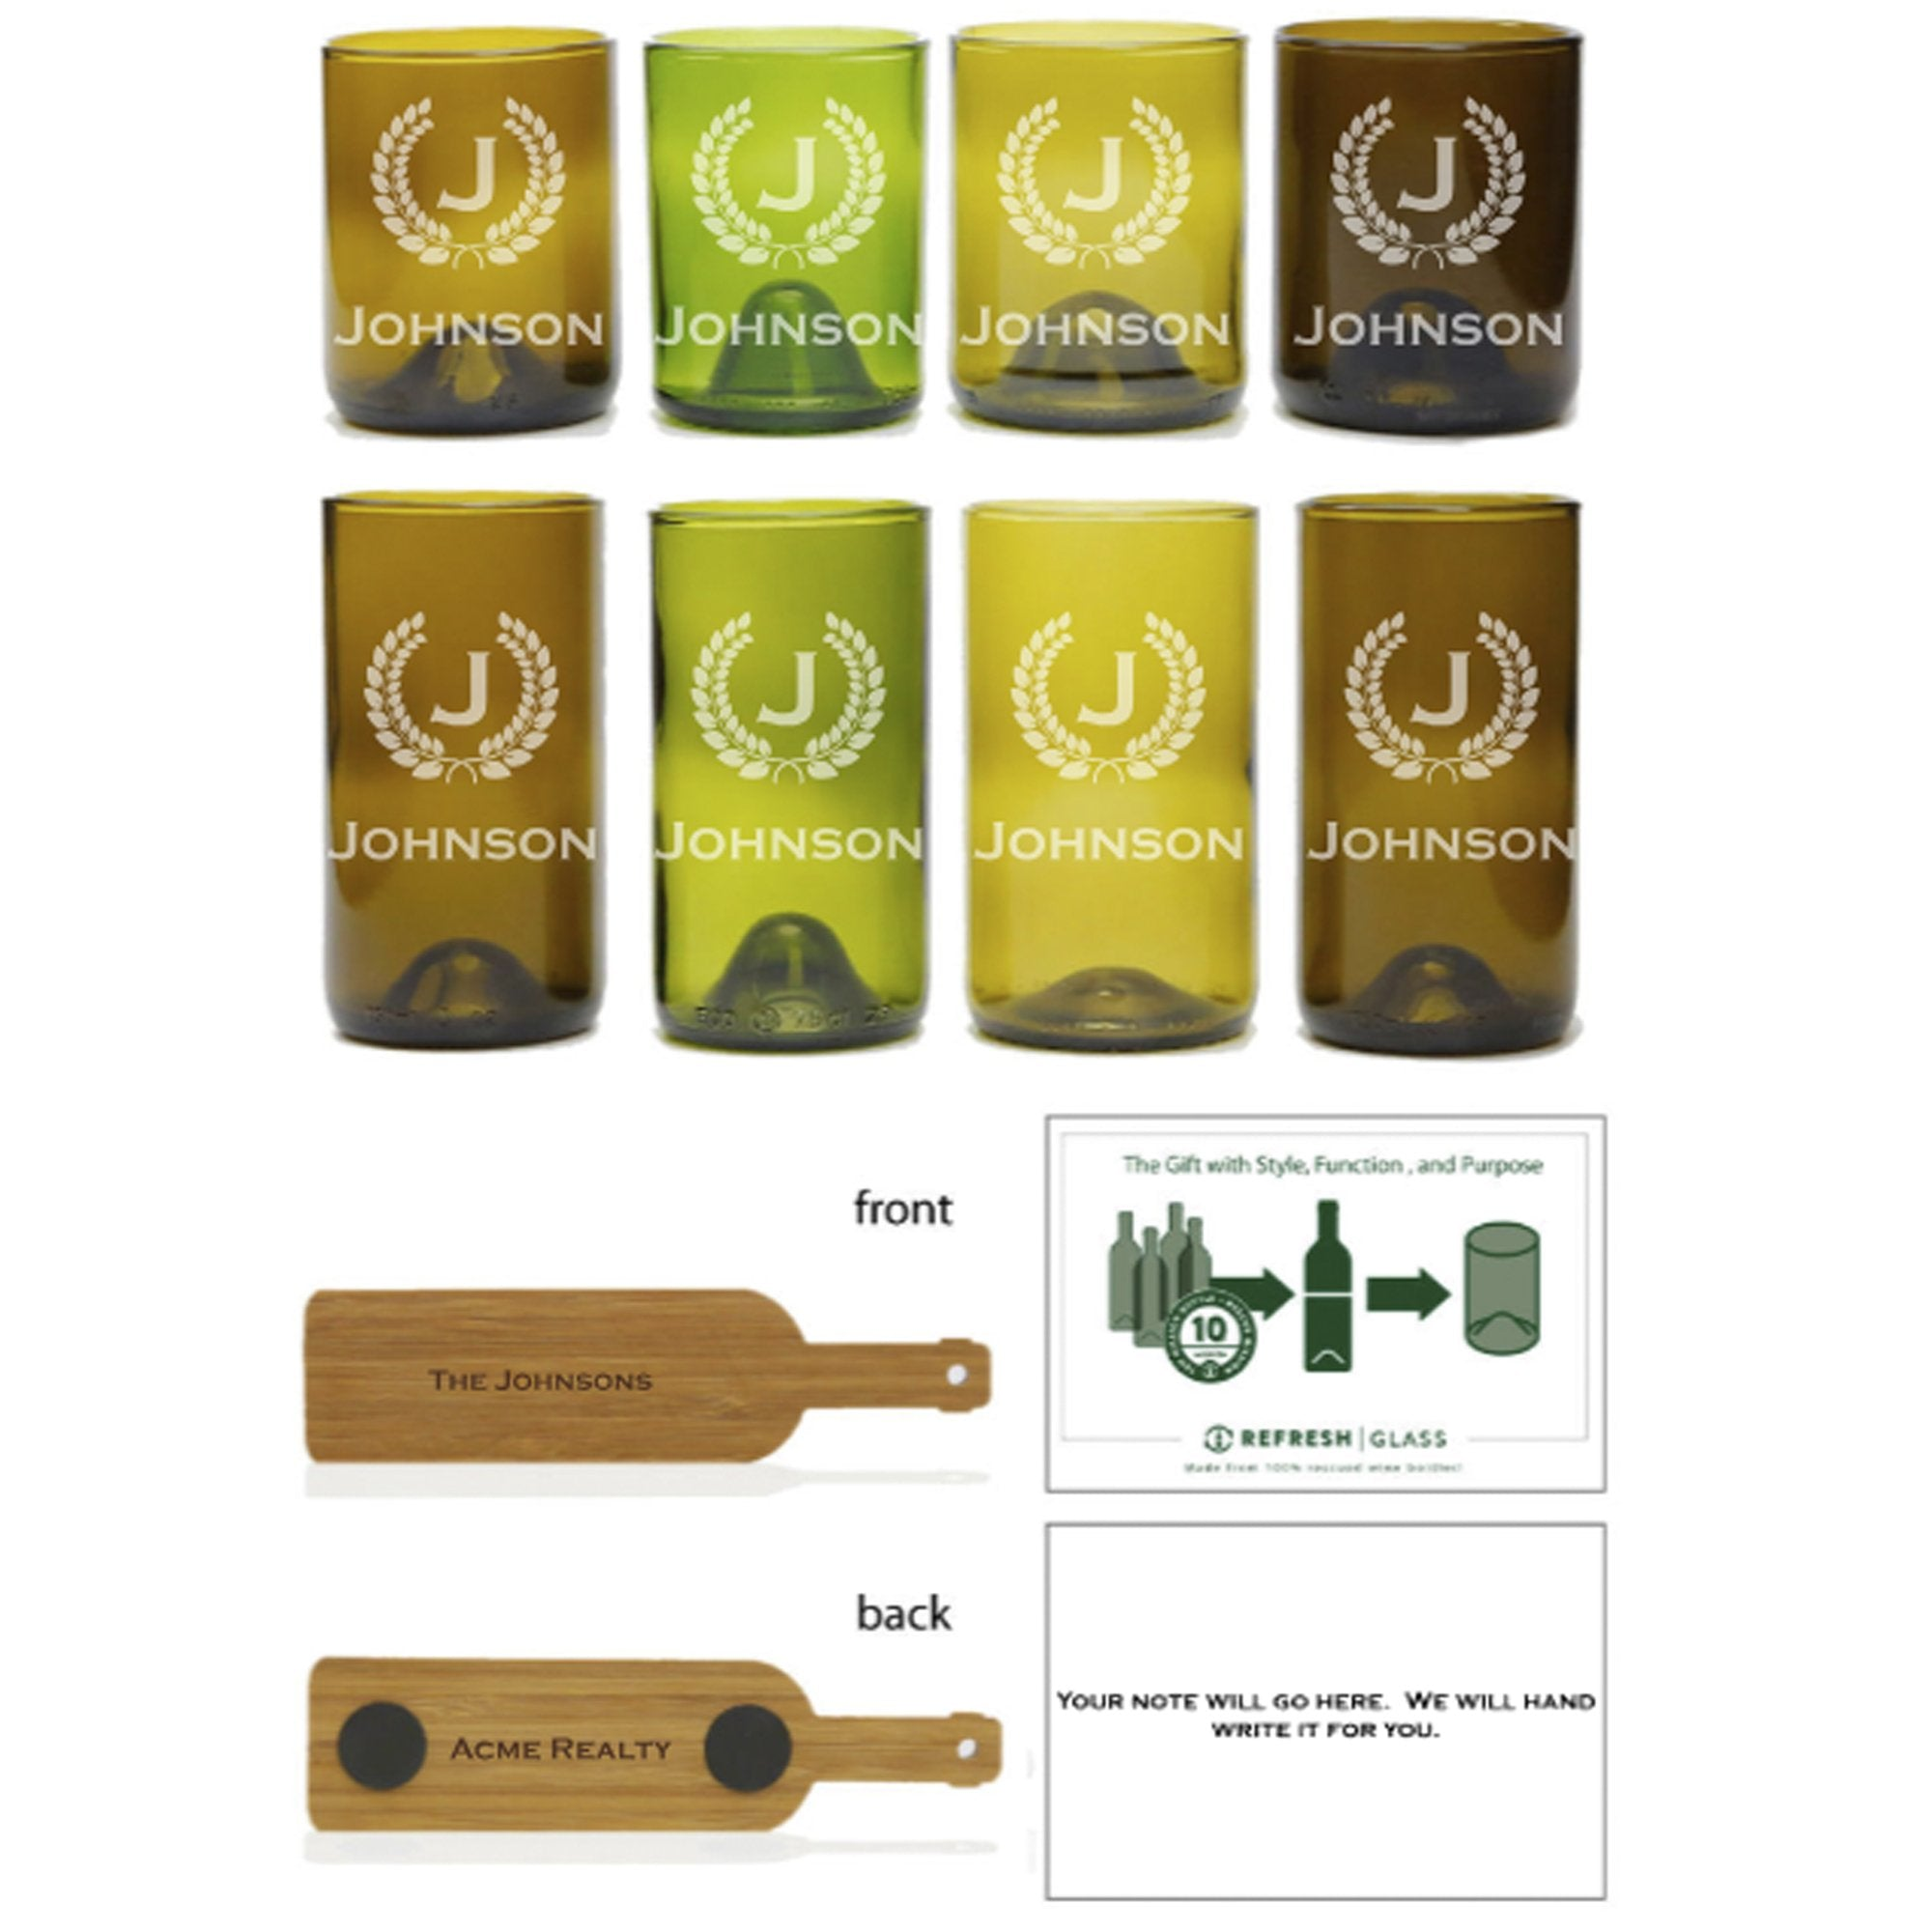 8-Glass Gift Set : 1-12oz 4 Pack Mixed Color & 1- 16oz Mixed Color Gift Set - Monogram & Crest